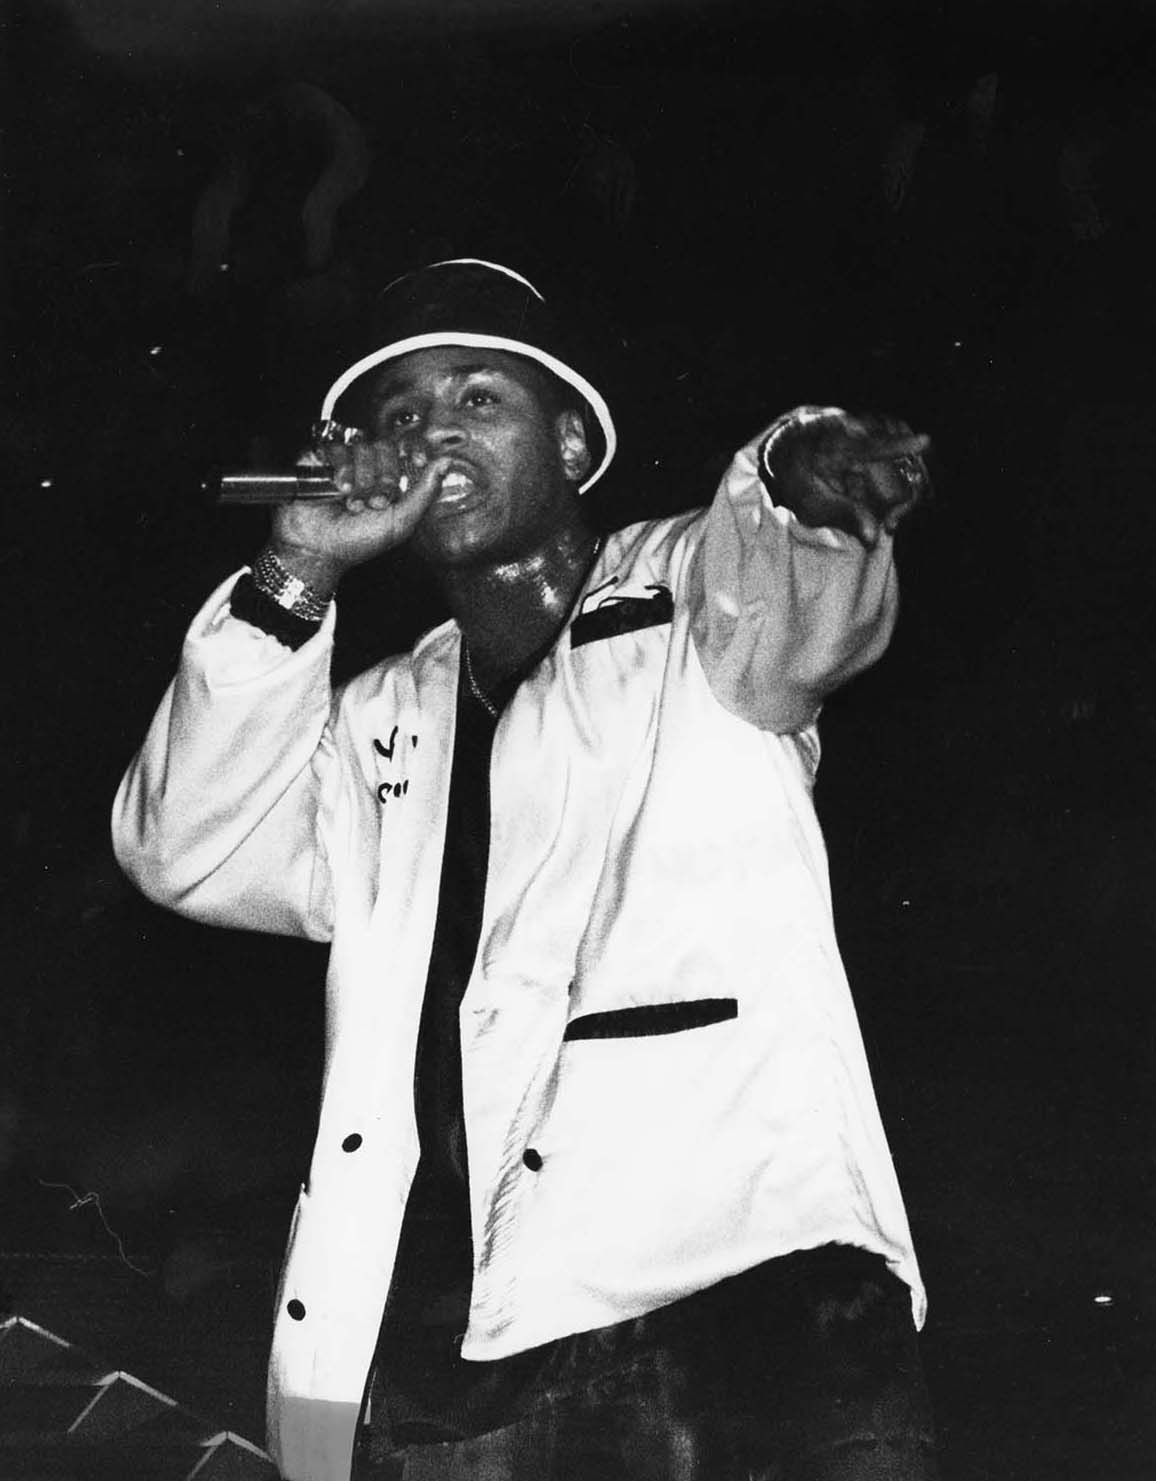 LL Cool J live photo